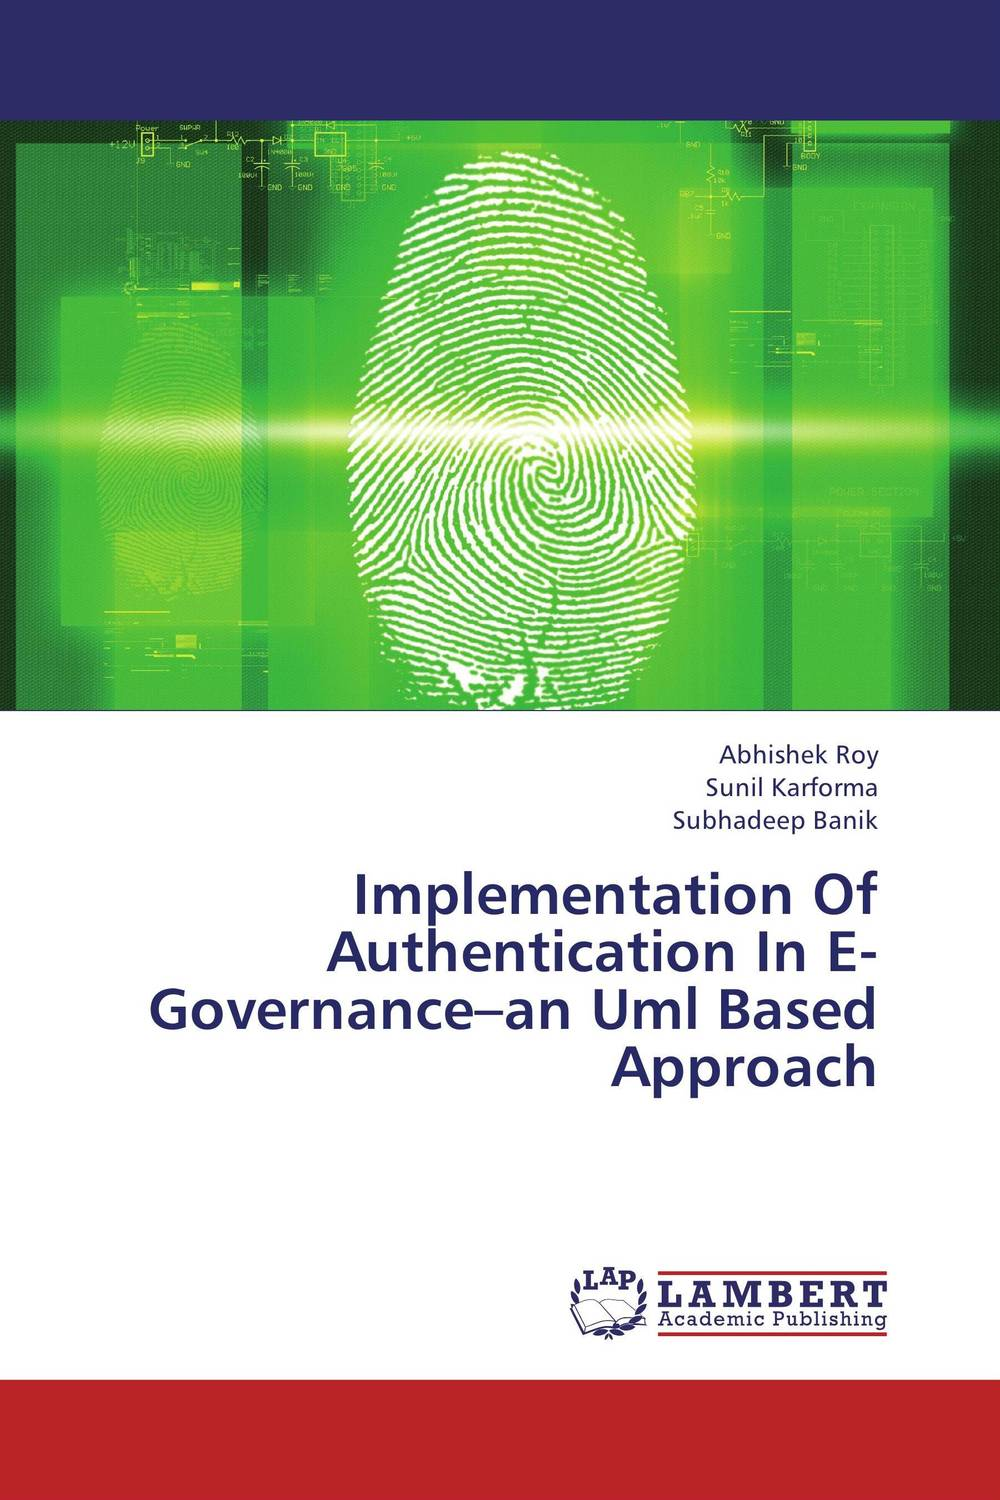 Implementation Of Authentication In E-Governance–an Uml Based Approach stephen goldsmith the responsive city engaging communities through data smart governance